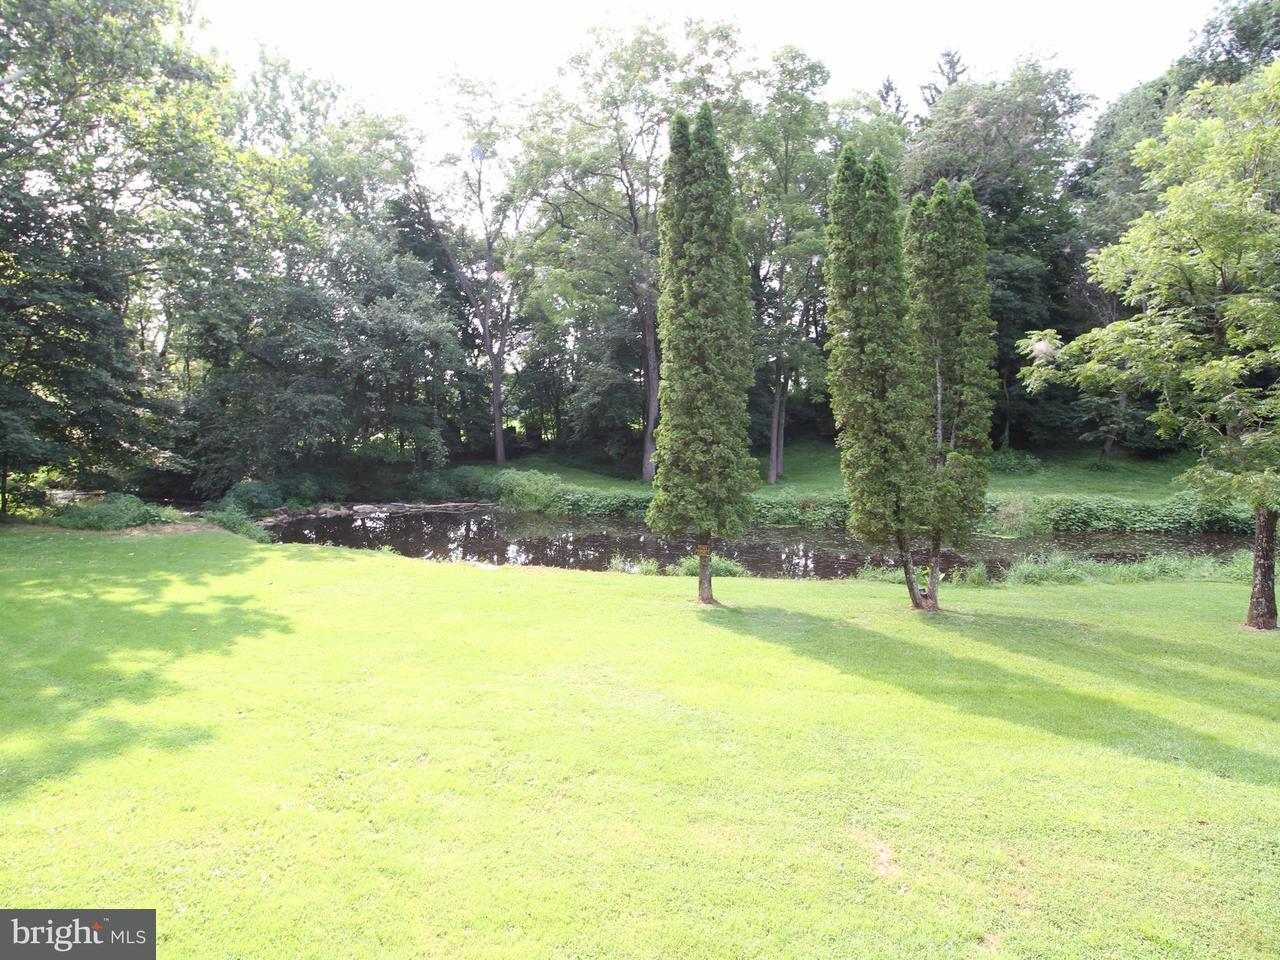 Land for Sale at 0 Ray Mar Rd Oxford, Pennsylvania 19363 United States